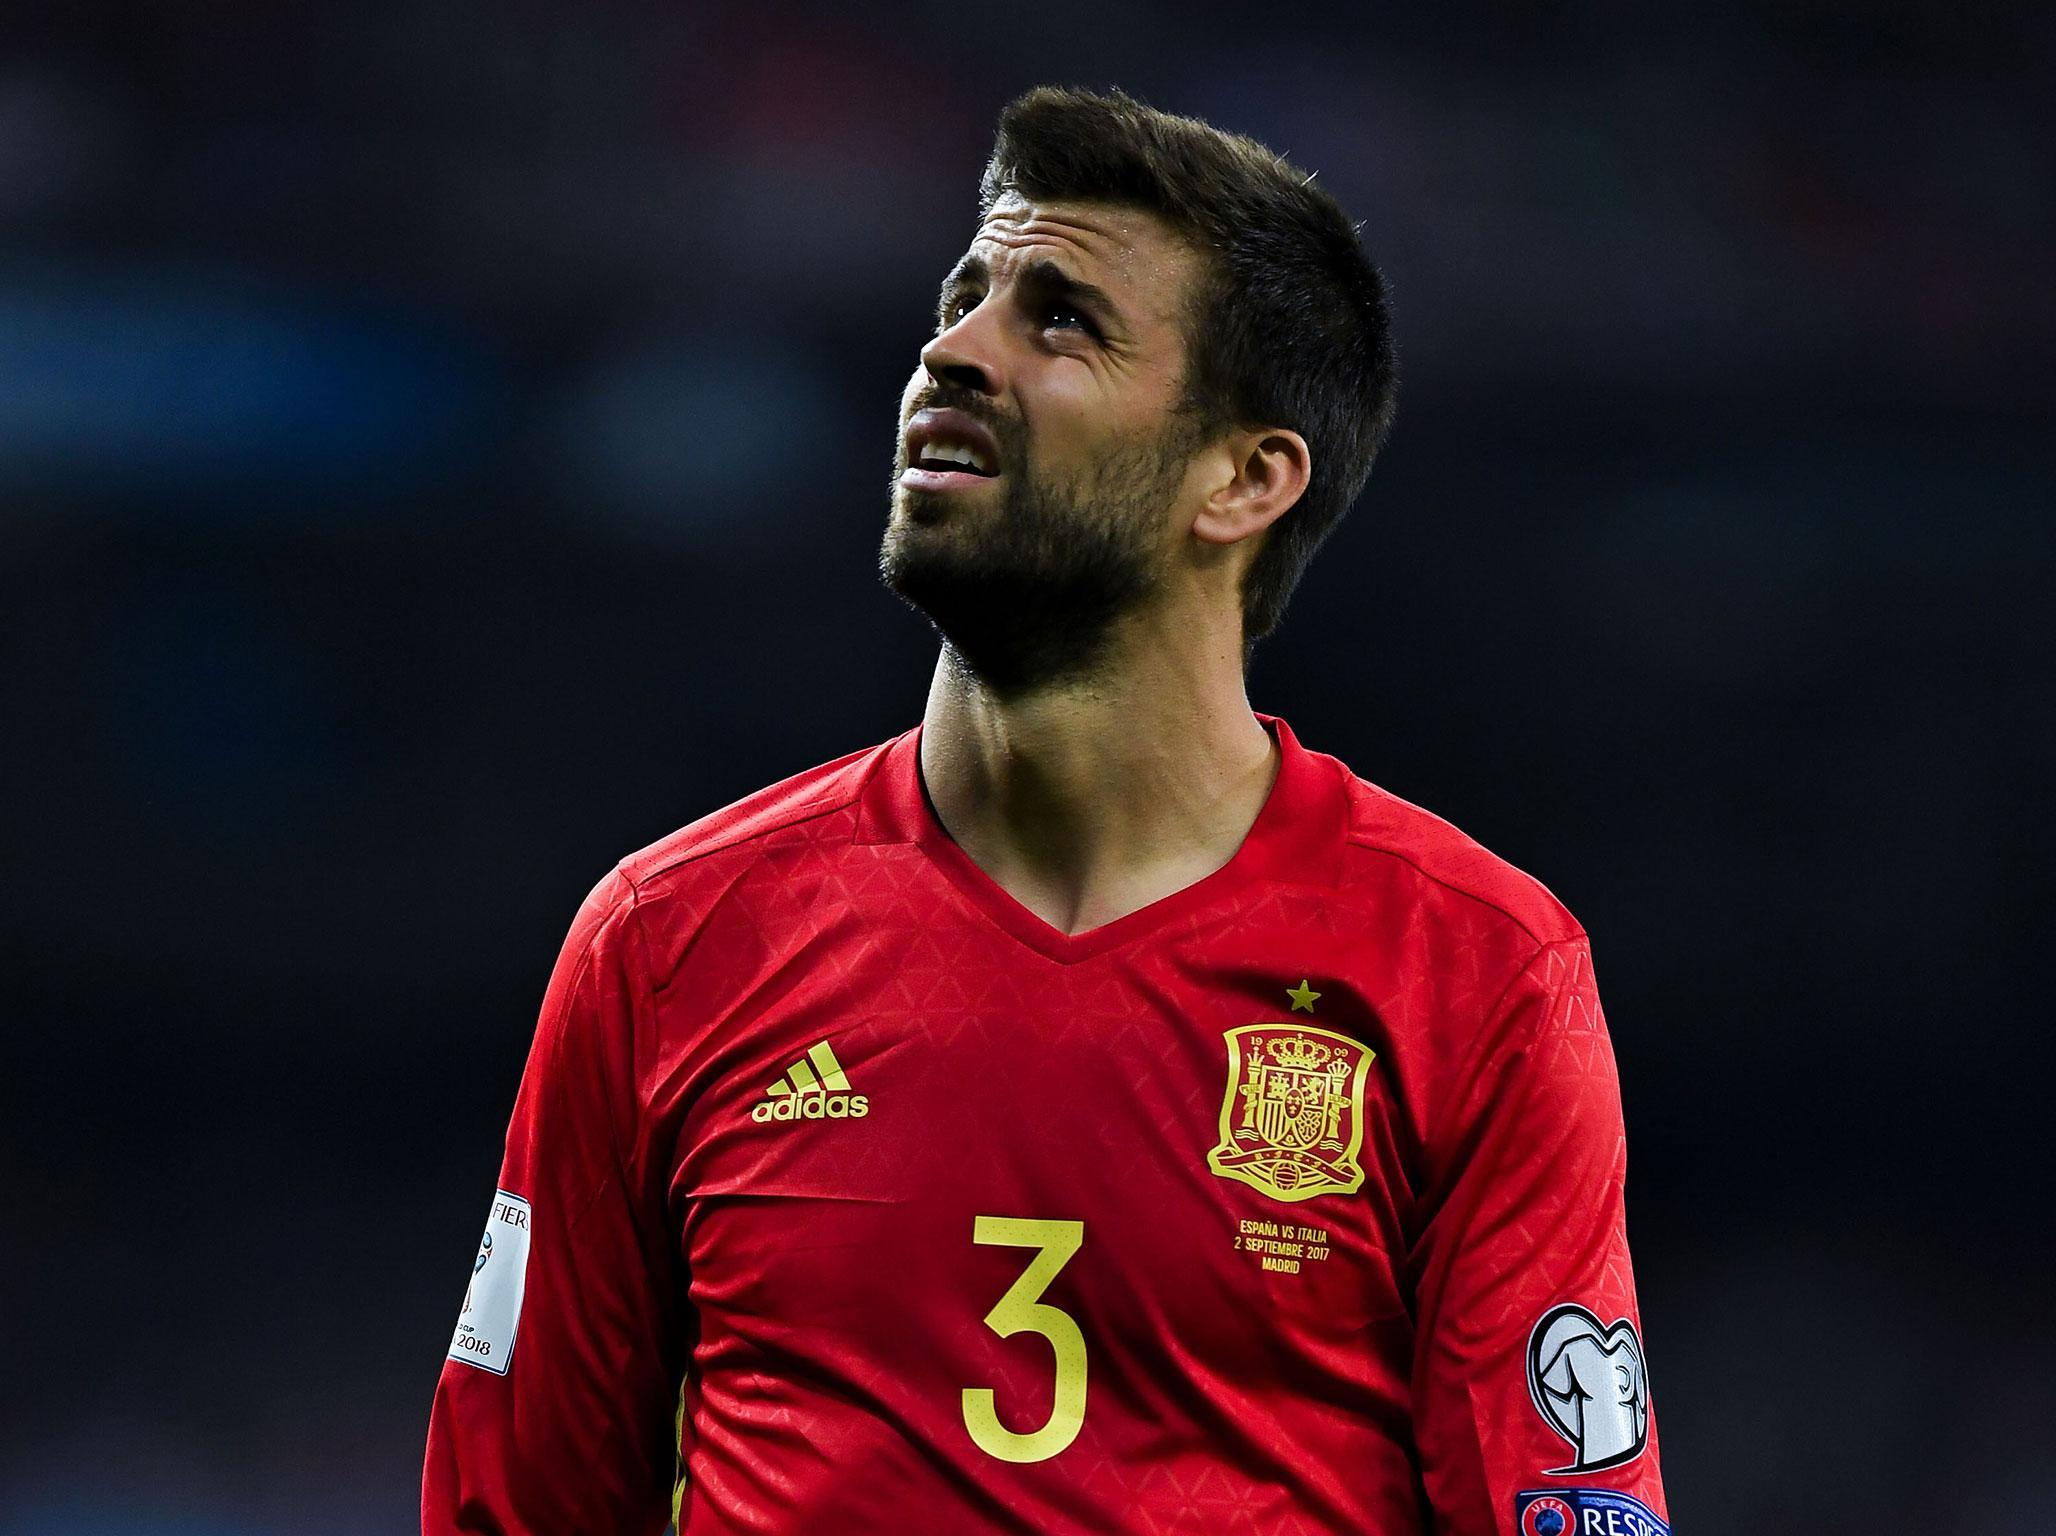 Gerard Pique prepared to turn his back on Spain if pro Catalonia